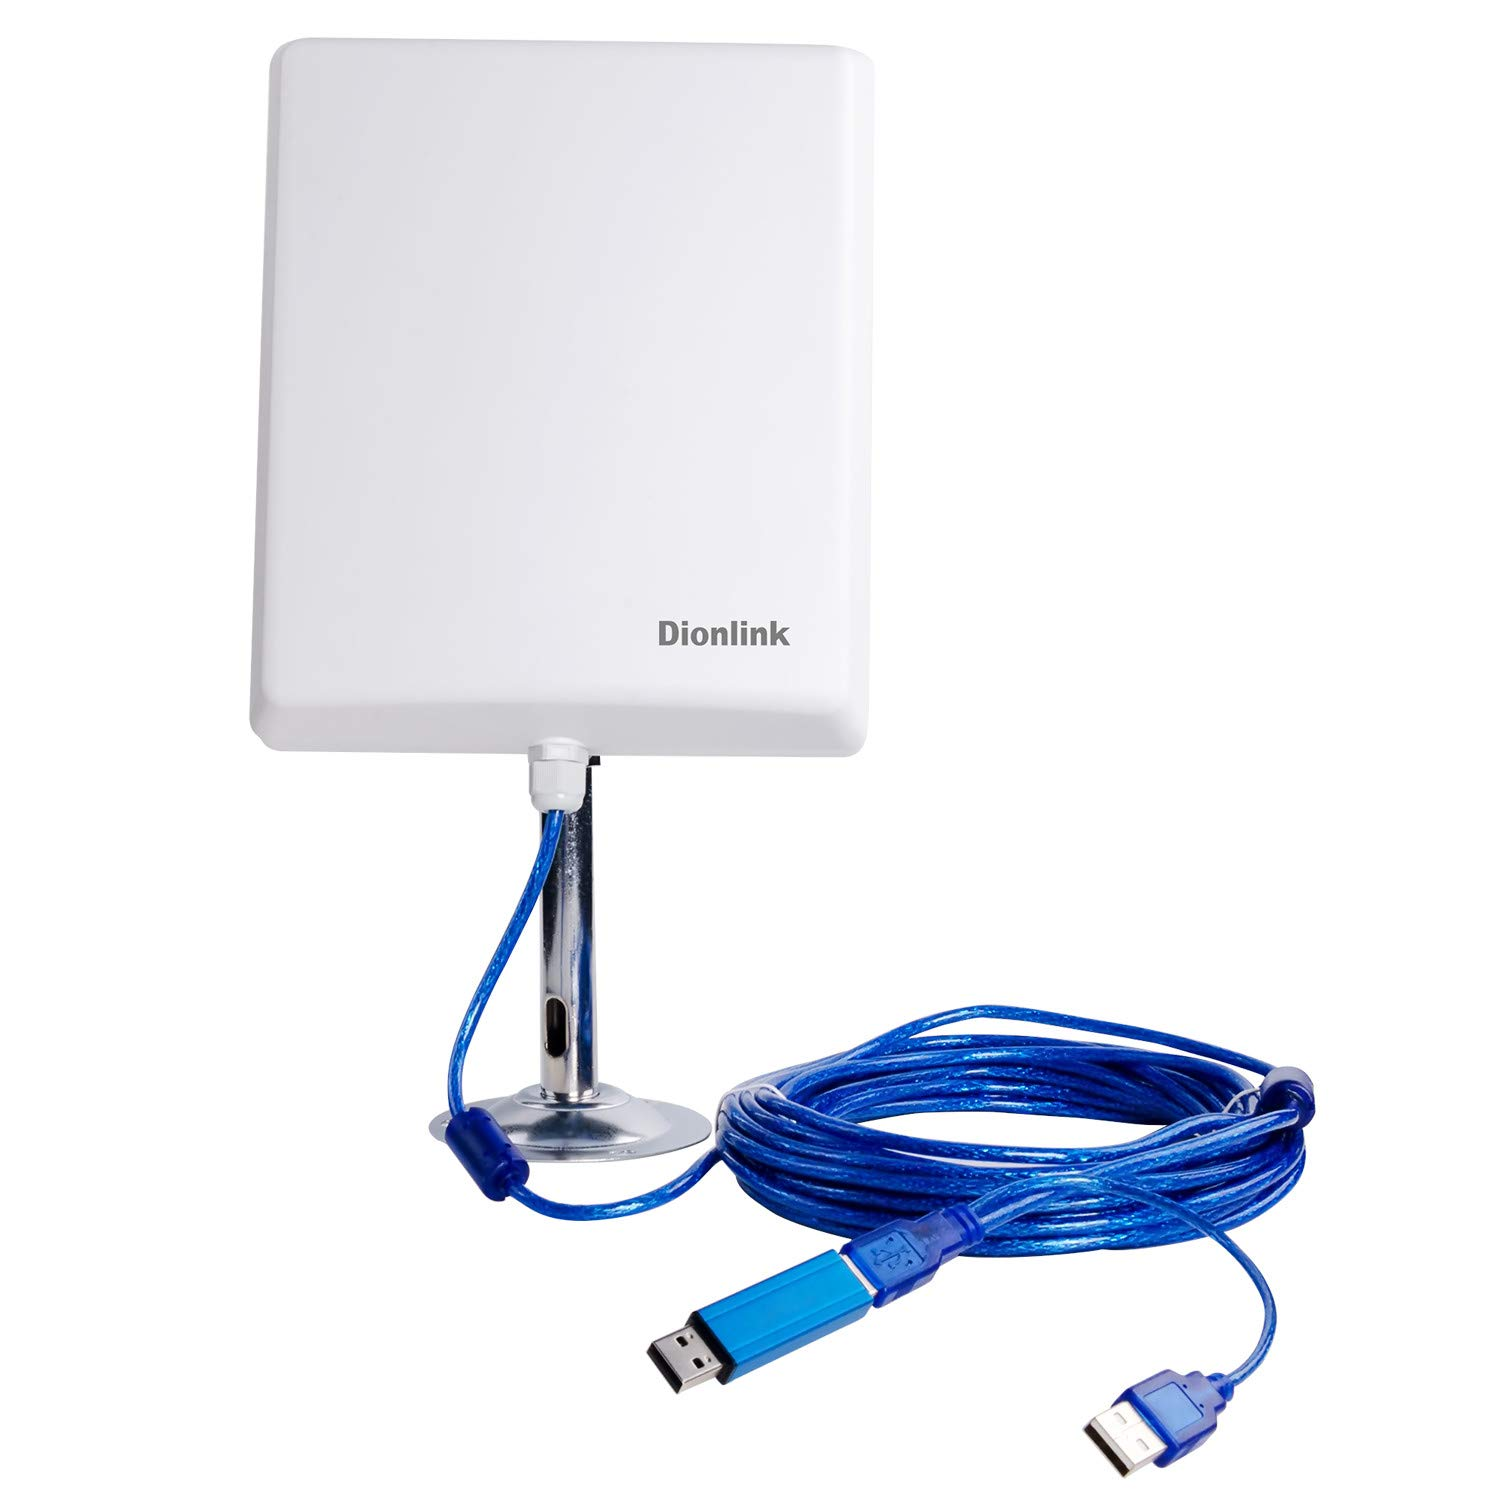 Dionlink 2.4Ghz Outdoor Long Range Wi-Fi Antenna | 36dBi High Gain USB Wi-Fi Extender Antenna for RV & Marine & PCs by Dionlink